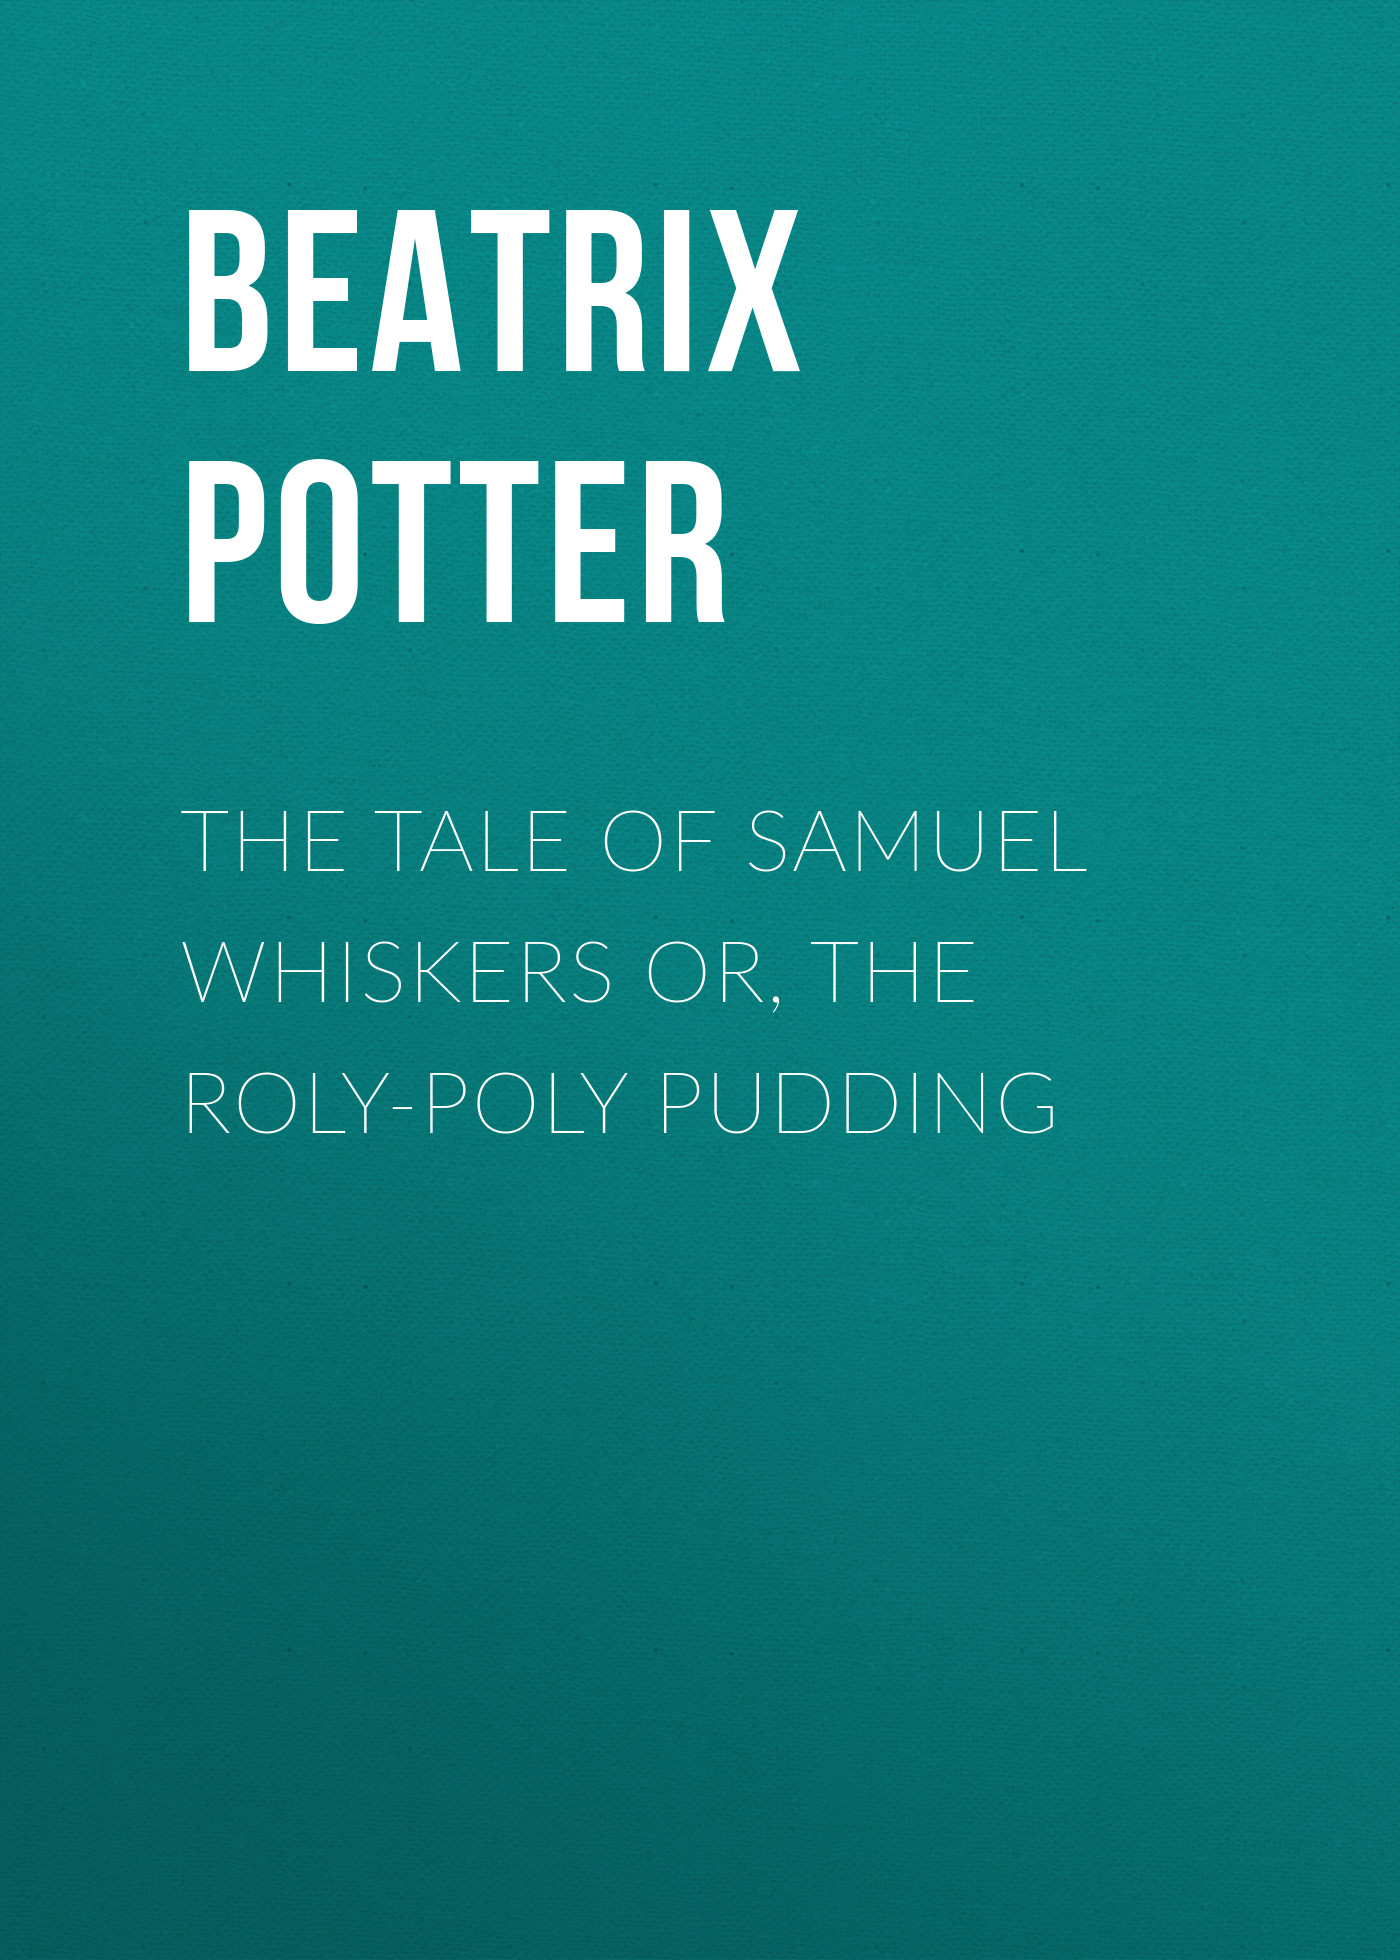 Беатрис Поттер The Tale of Samuel Whiskers or, The Roly-Poly Pudding мантоварка калитва 13 л 4 яруса